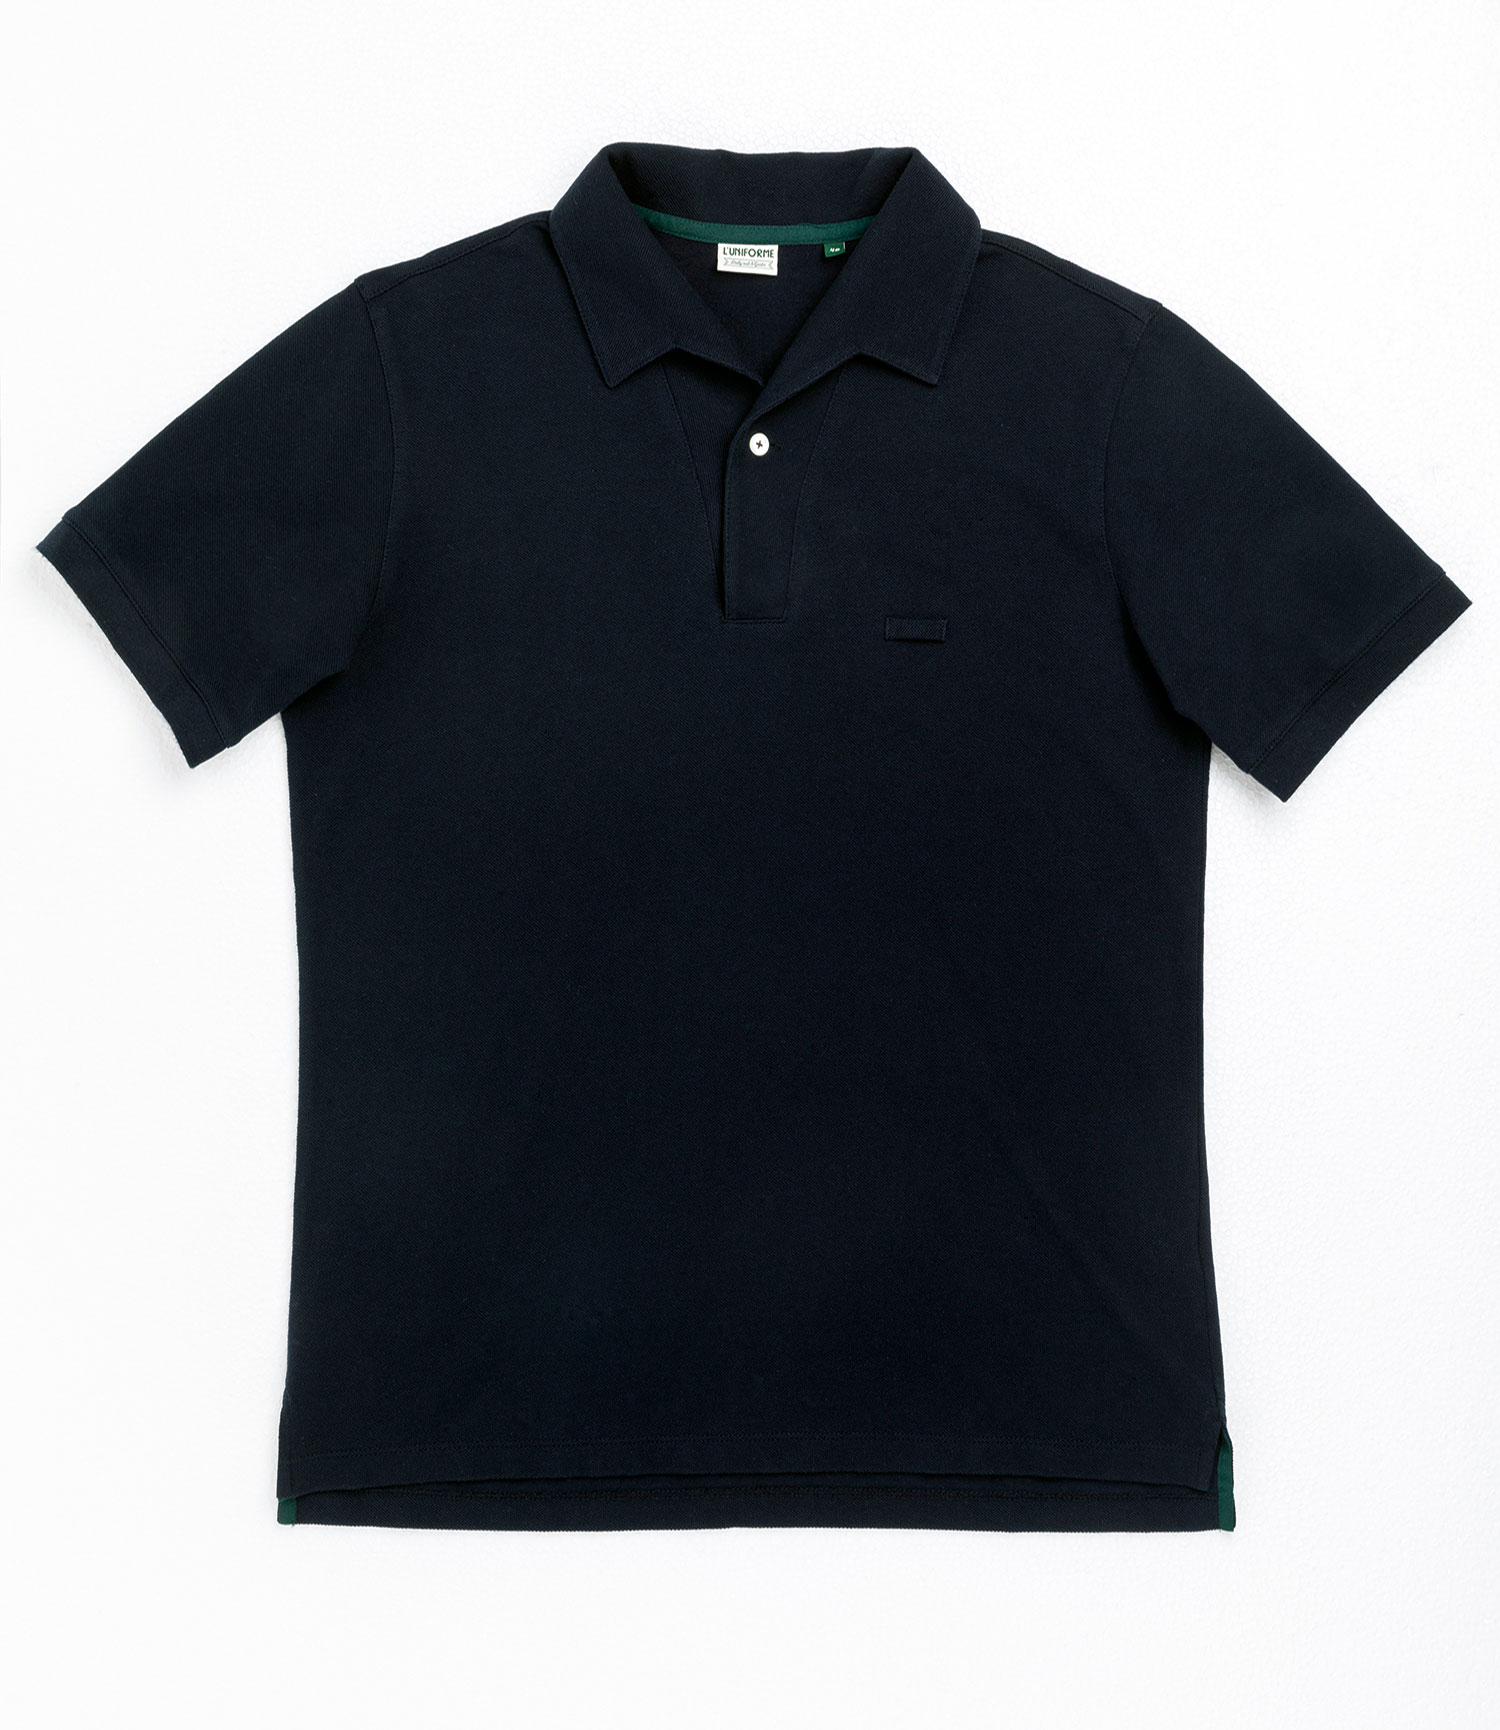 -L'uniforme] One piece collar pique shirt - Navy